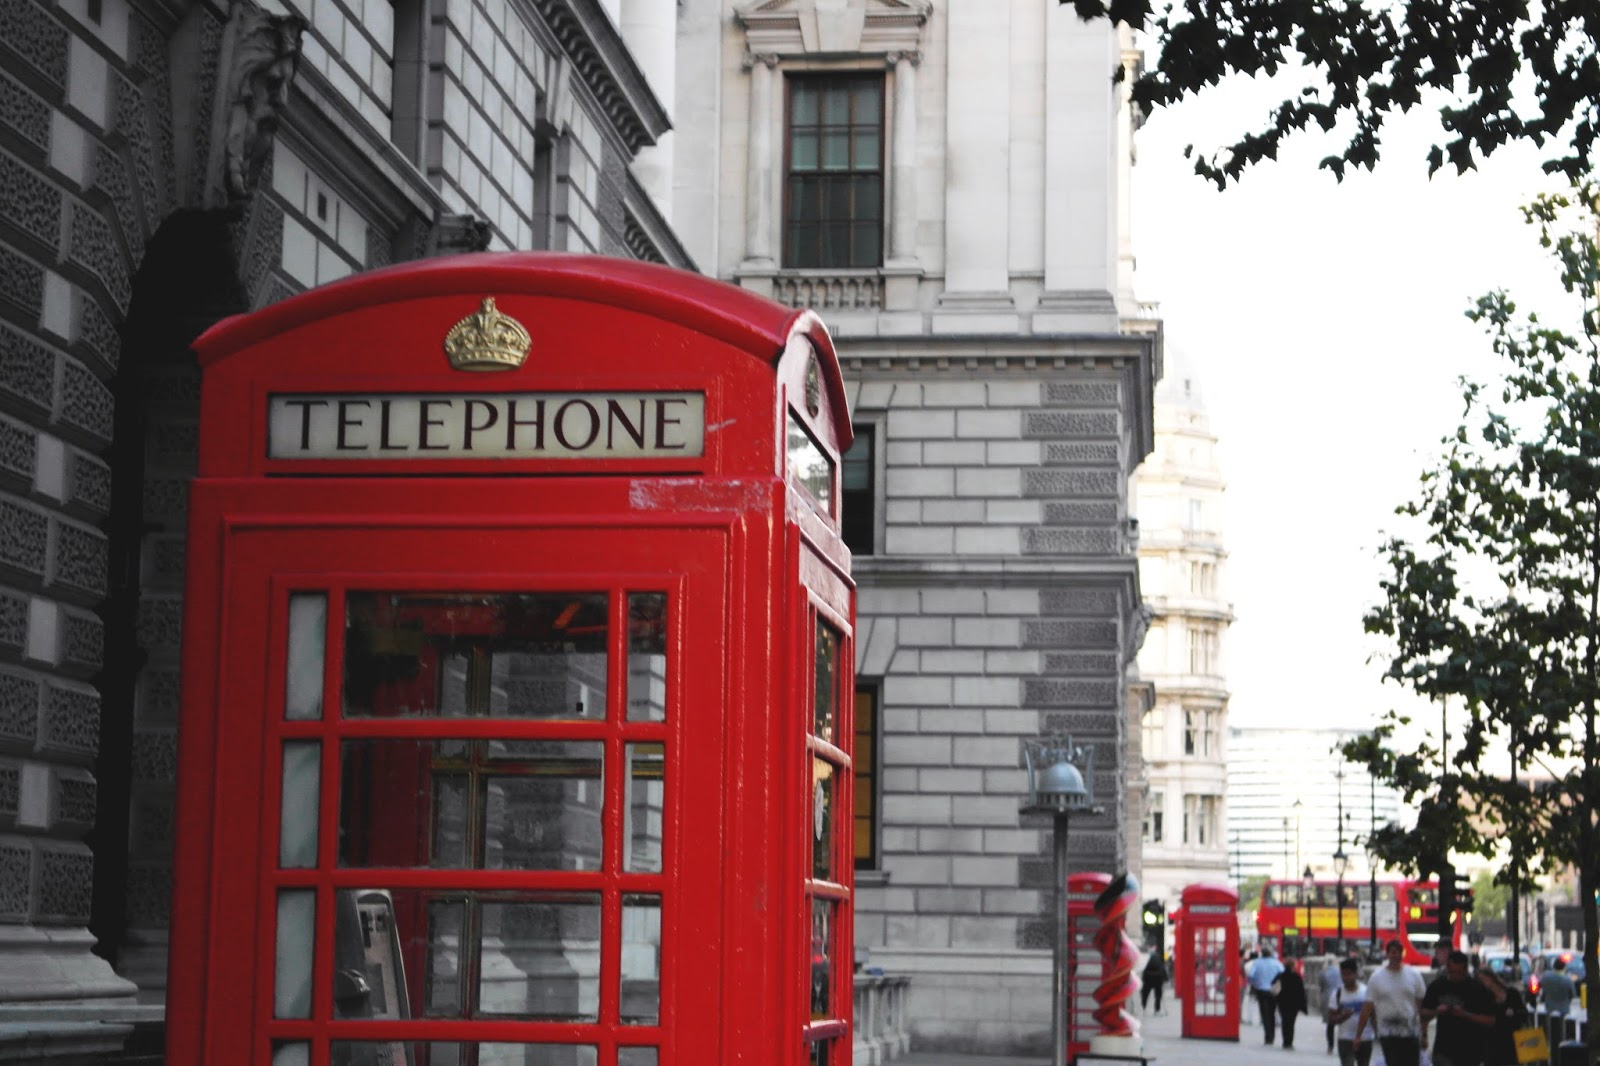 London Red Telephone Box